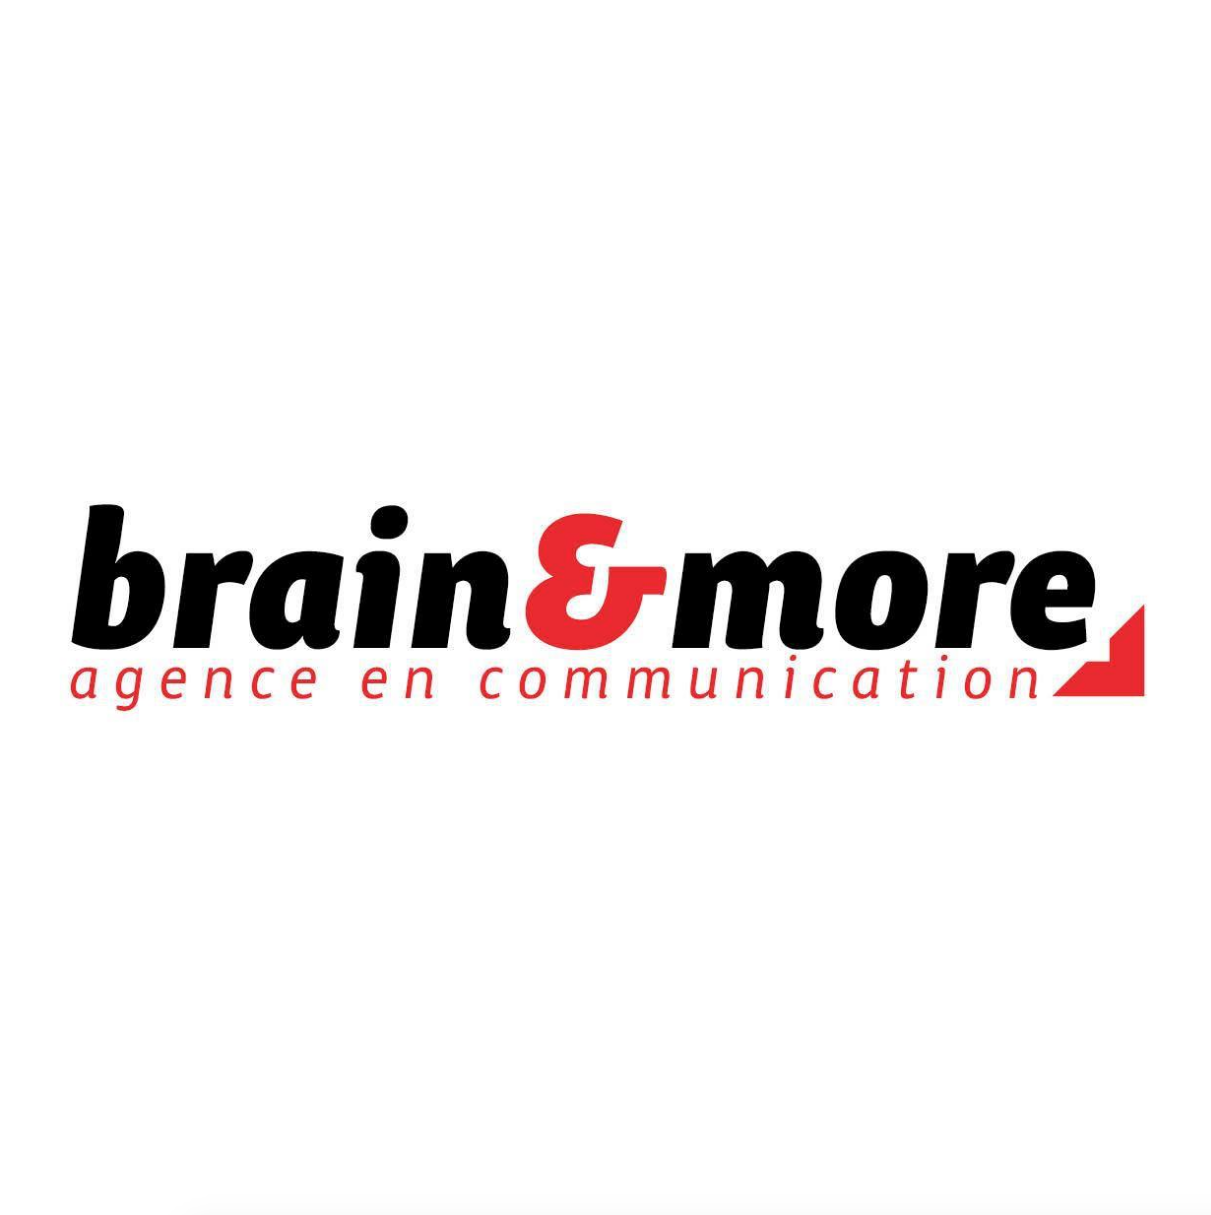 brain&more - agence en communication